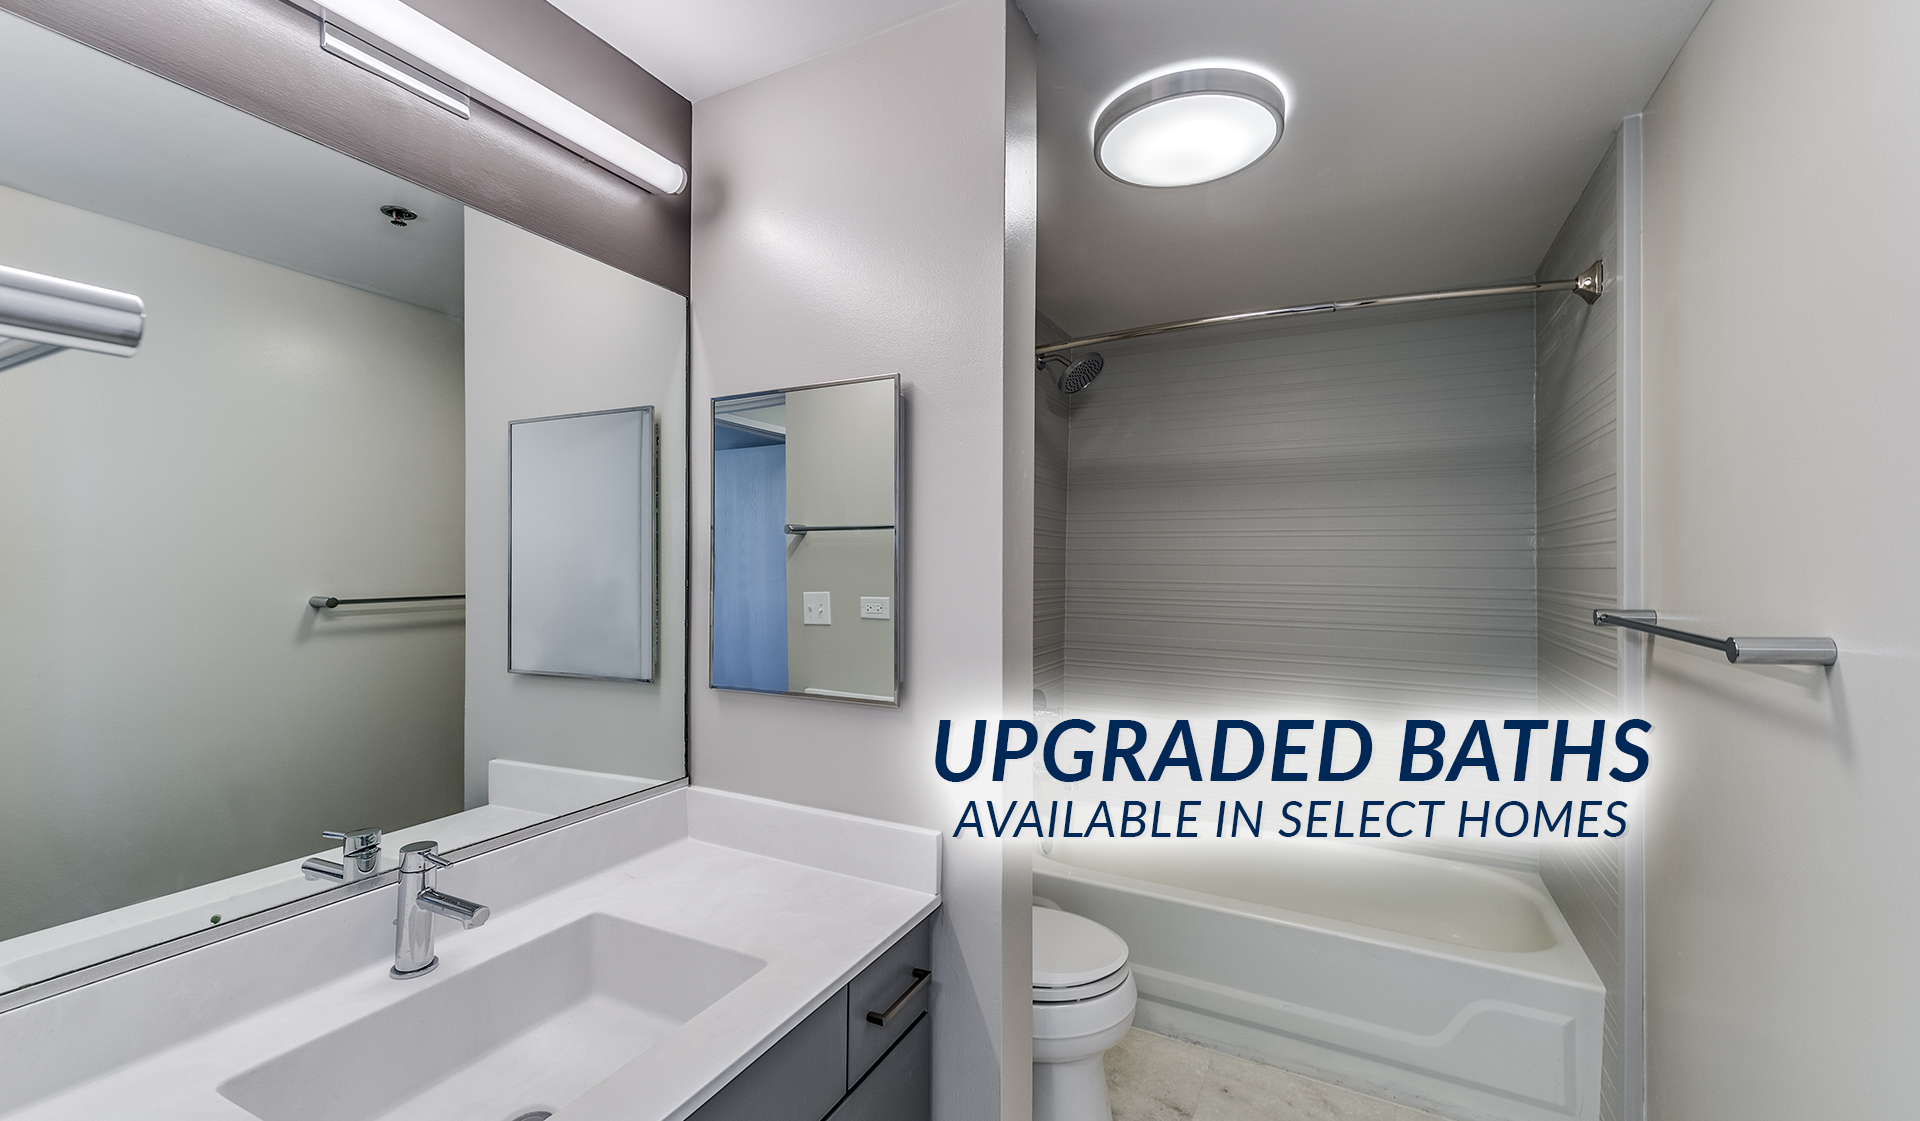 Evanston Place Apartments in Evanston, IL -  upgraded baths